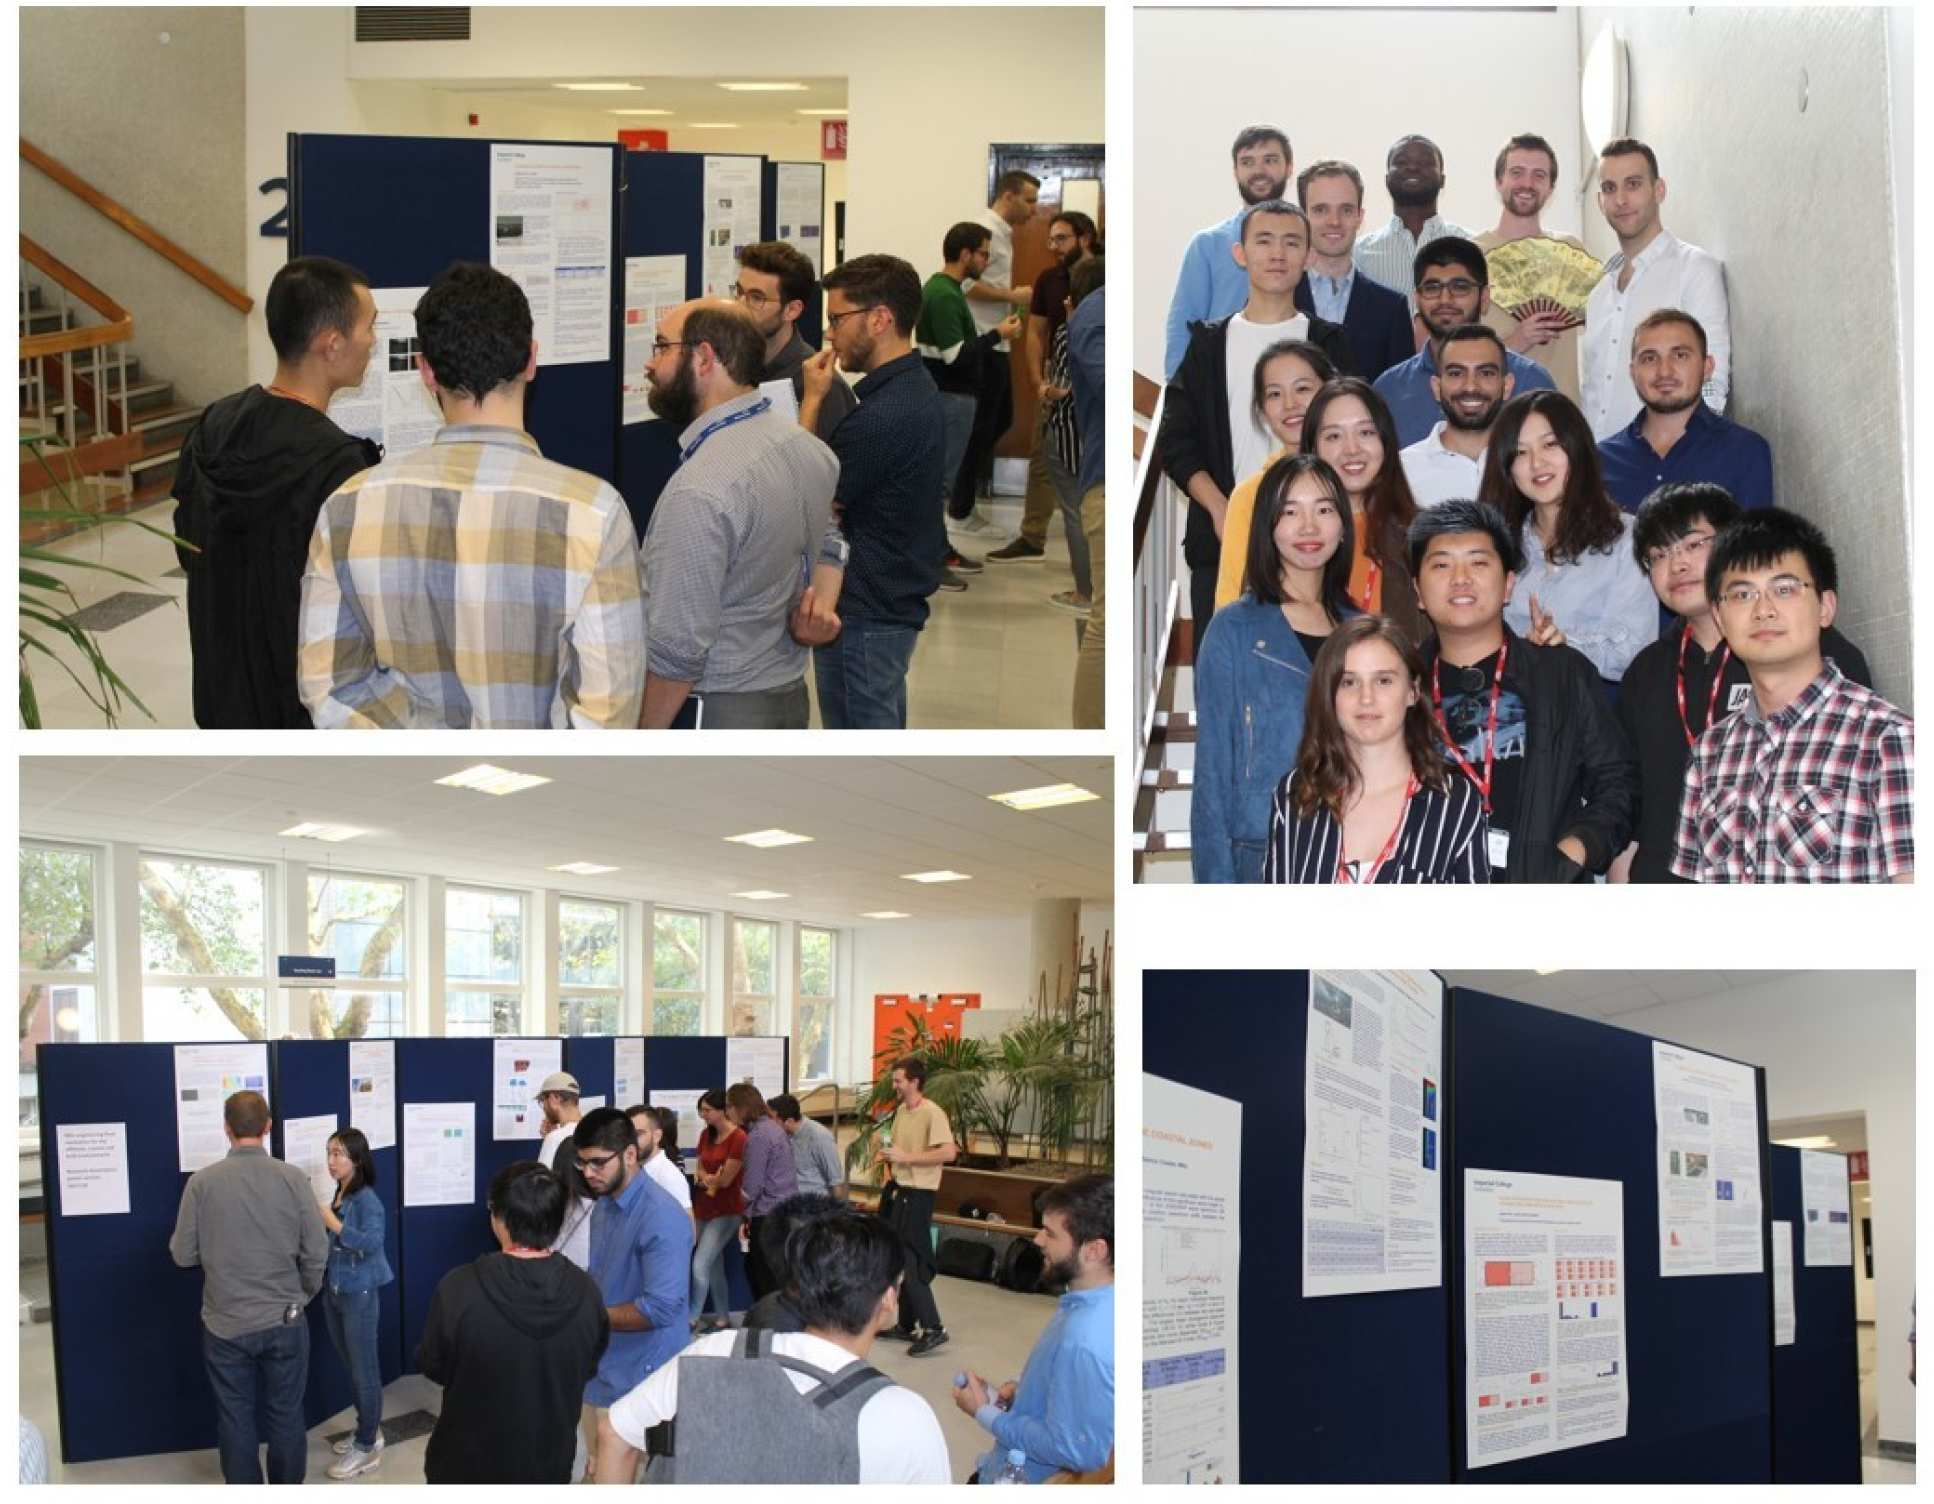 Photos from the 2017-18 poster session